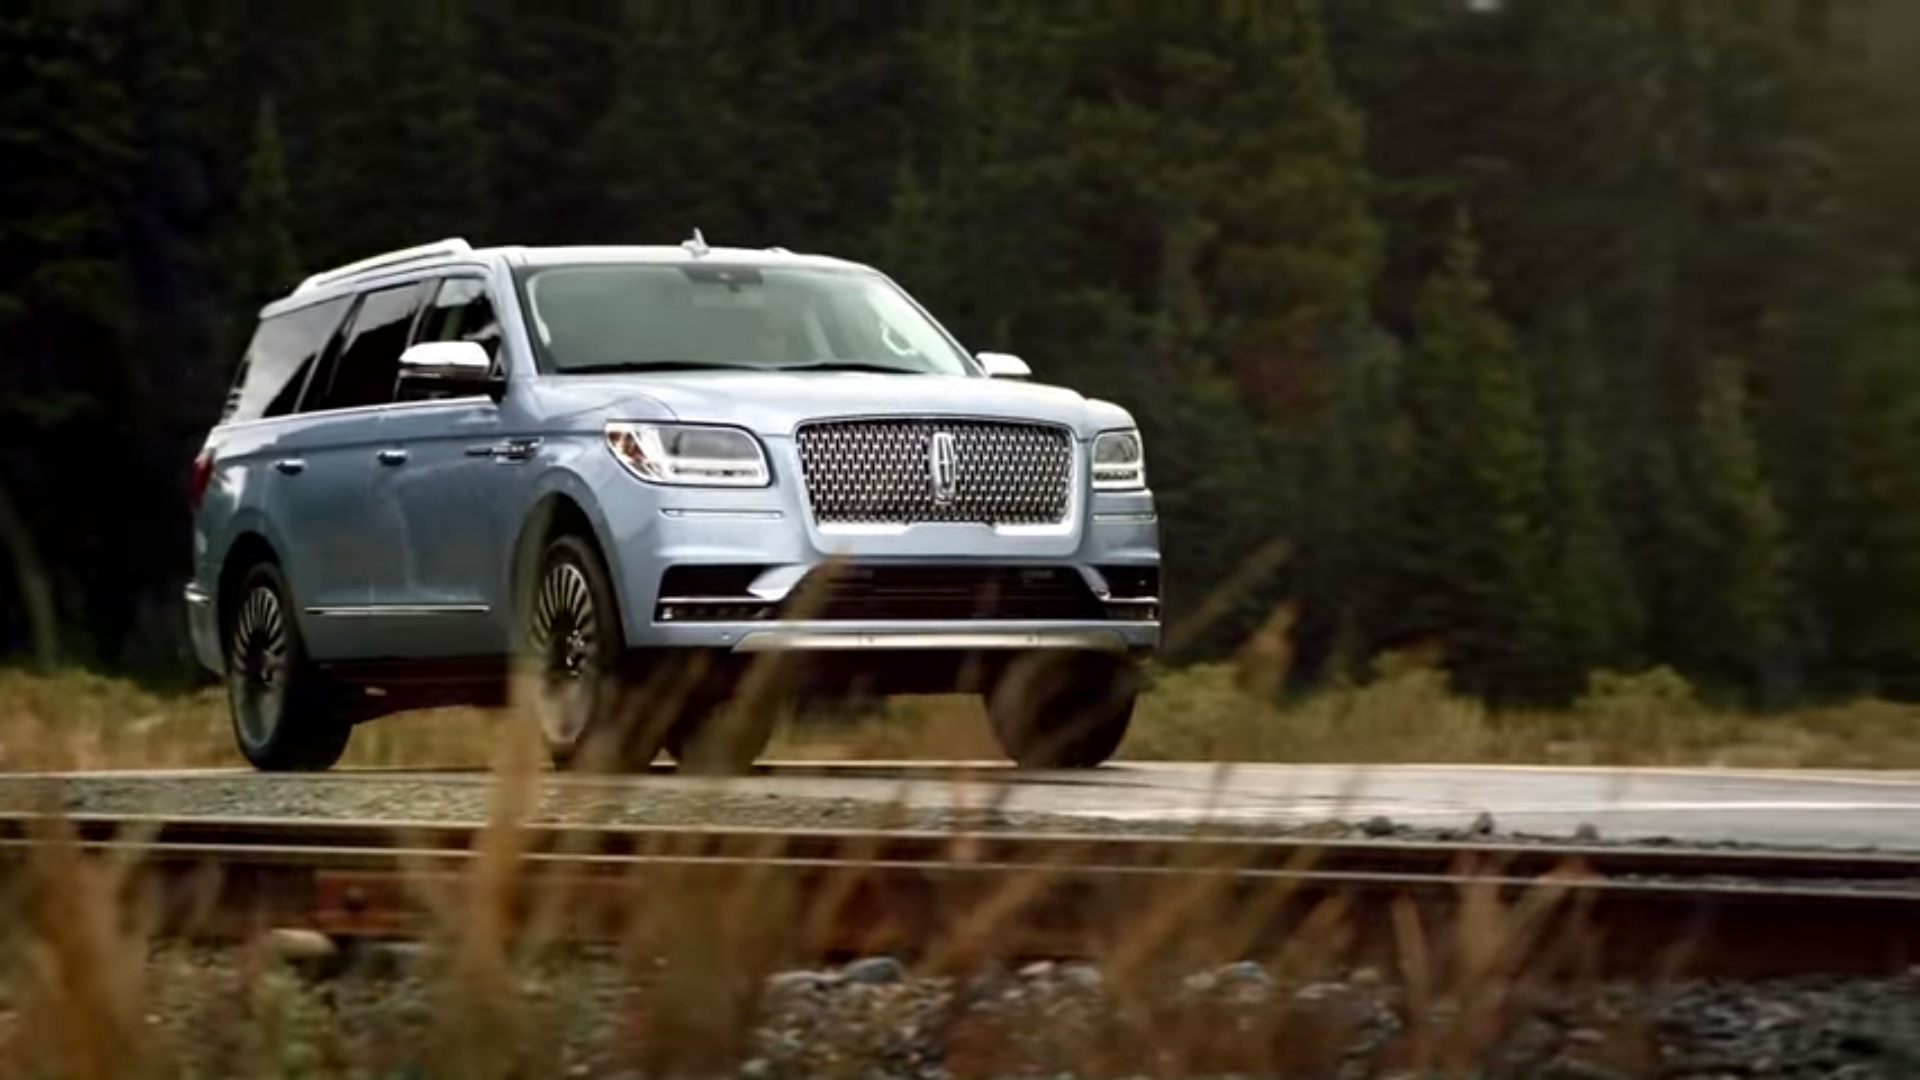 2018 Lincoln Navigator Ad Has A Silent Matthew Mcconaughey And A